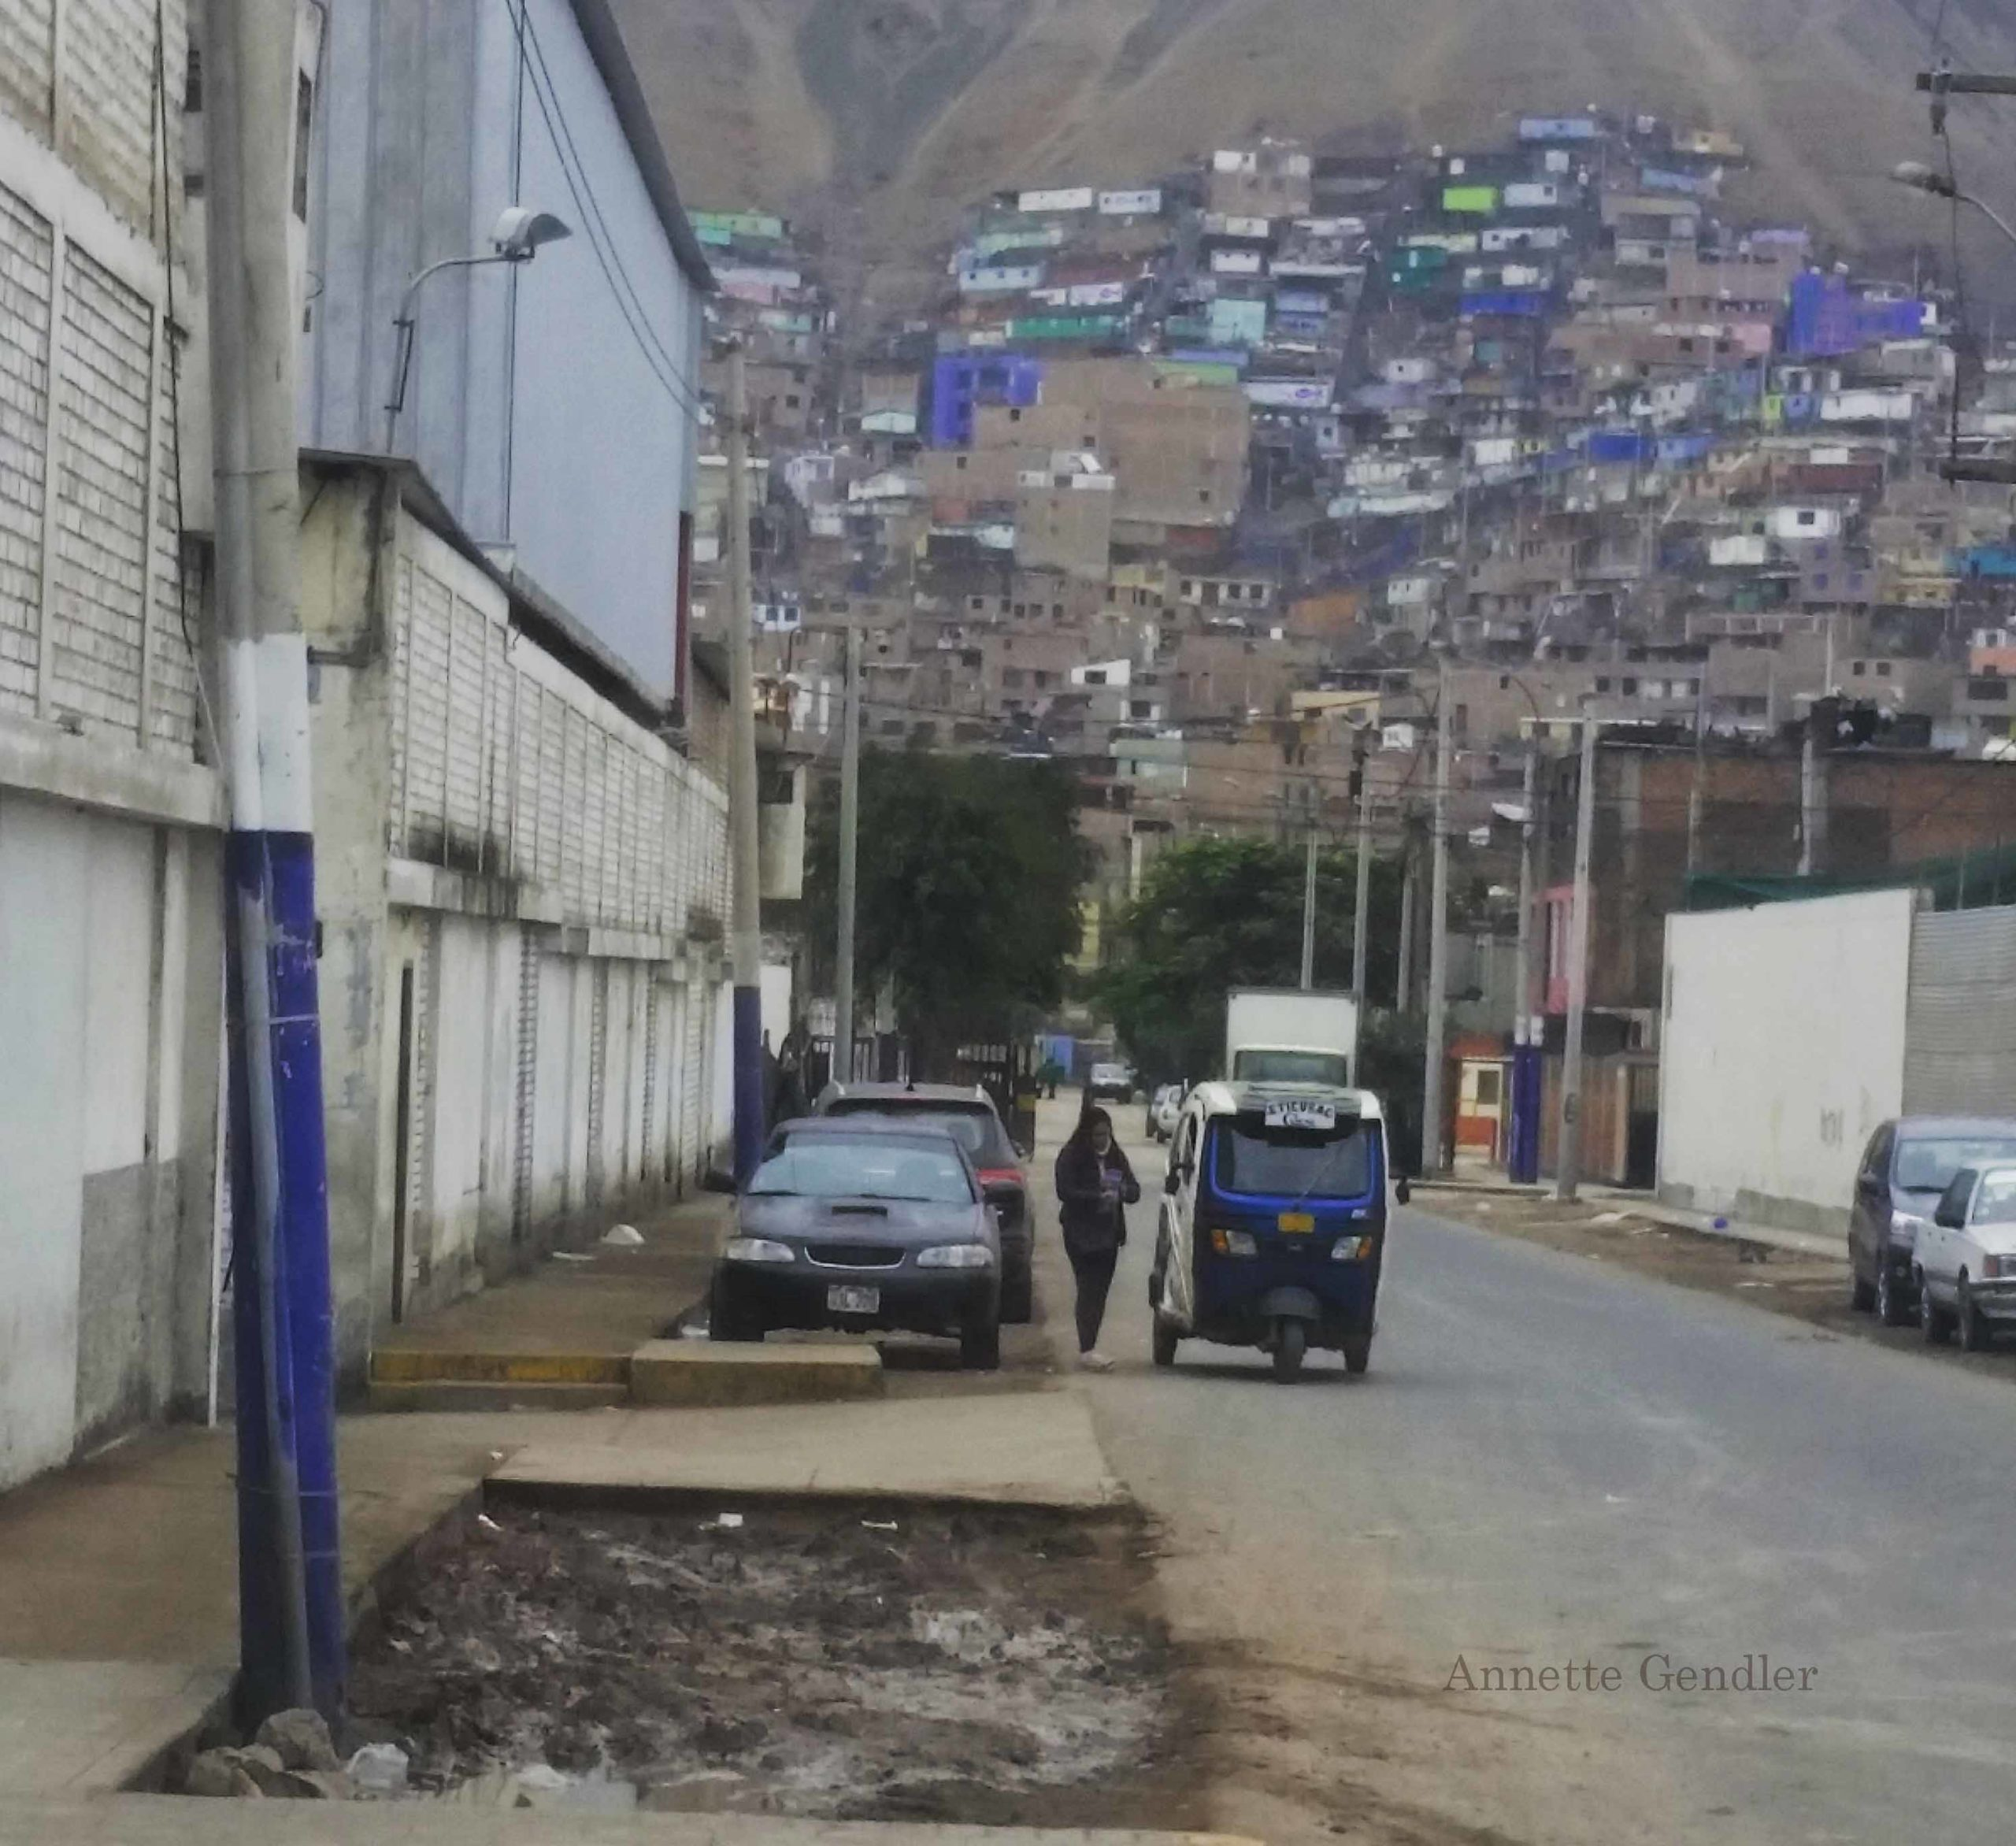 taktak car parked on dirt road in shanty town south of Peru, dirt hill with huts in the background